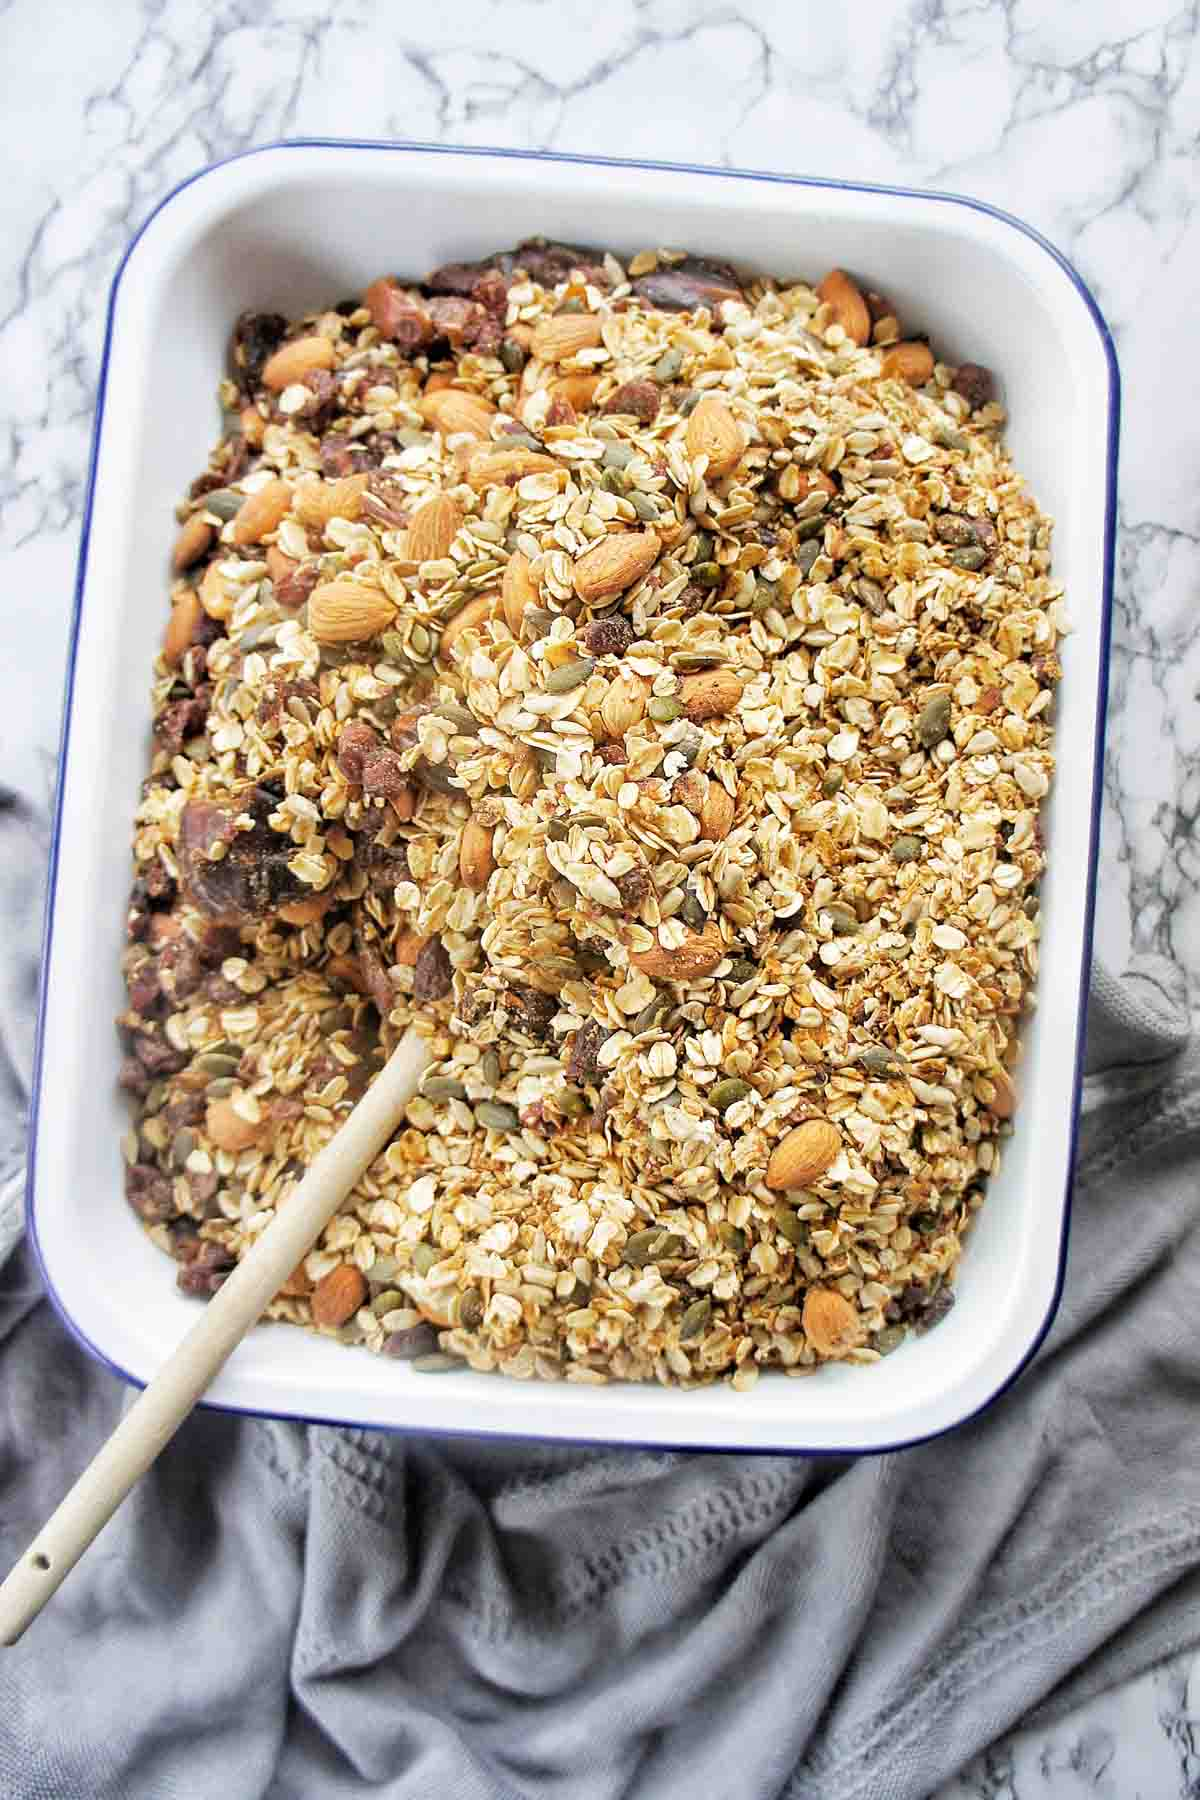 Pressure Cooker Granola in a white baking dish with wooden spoon